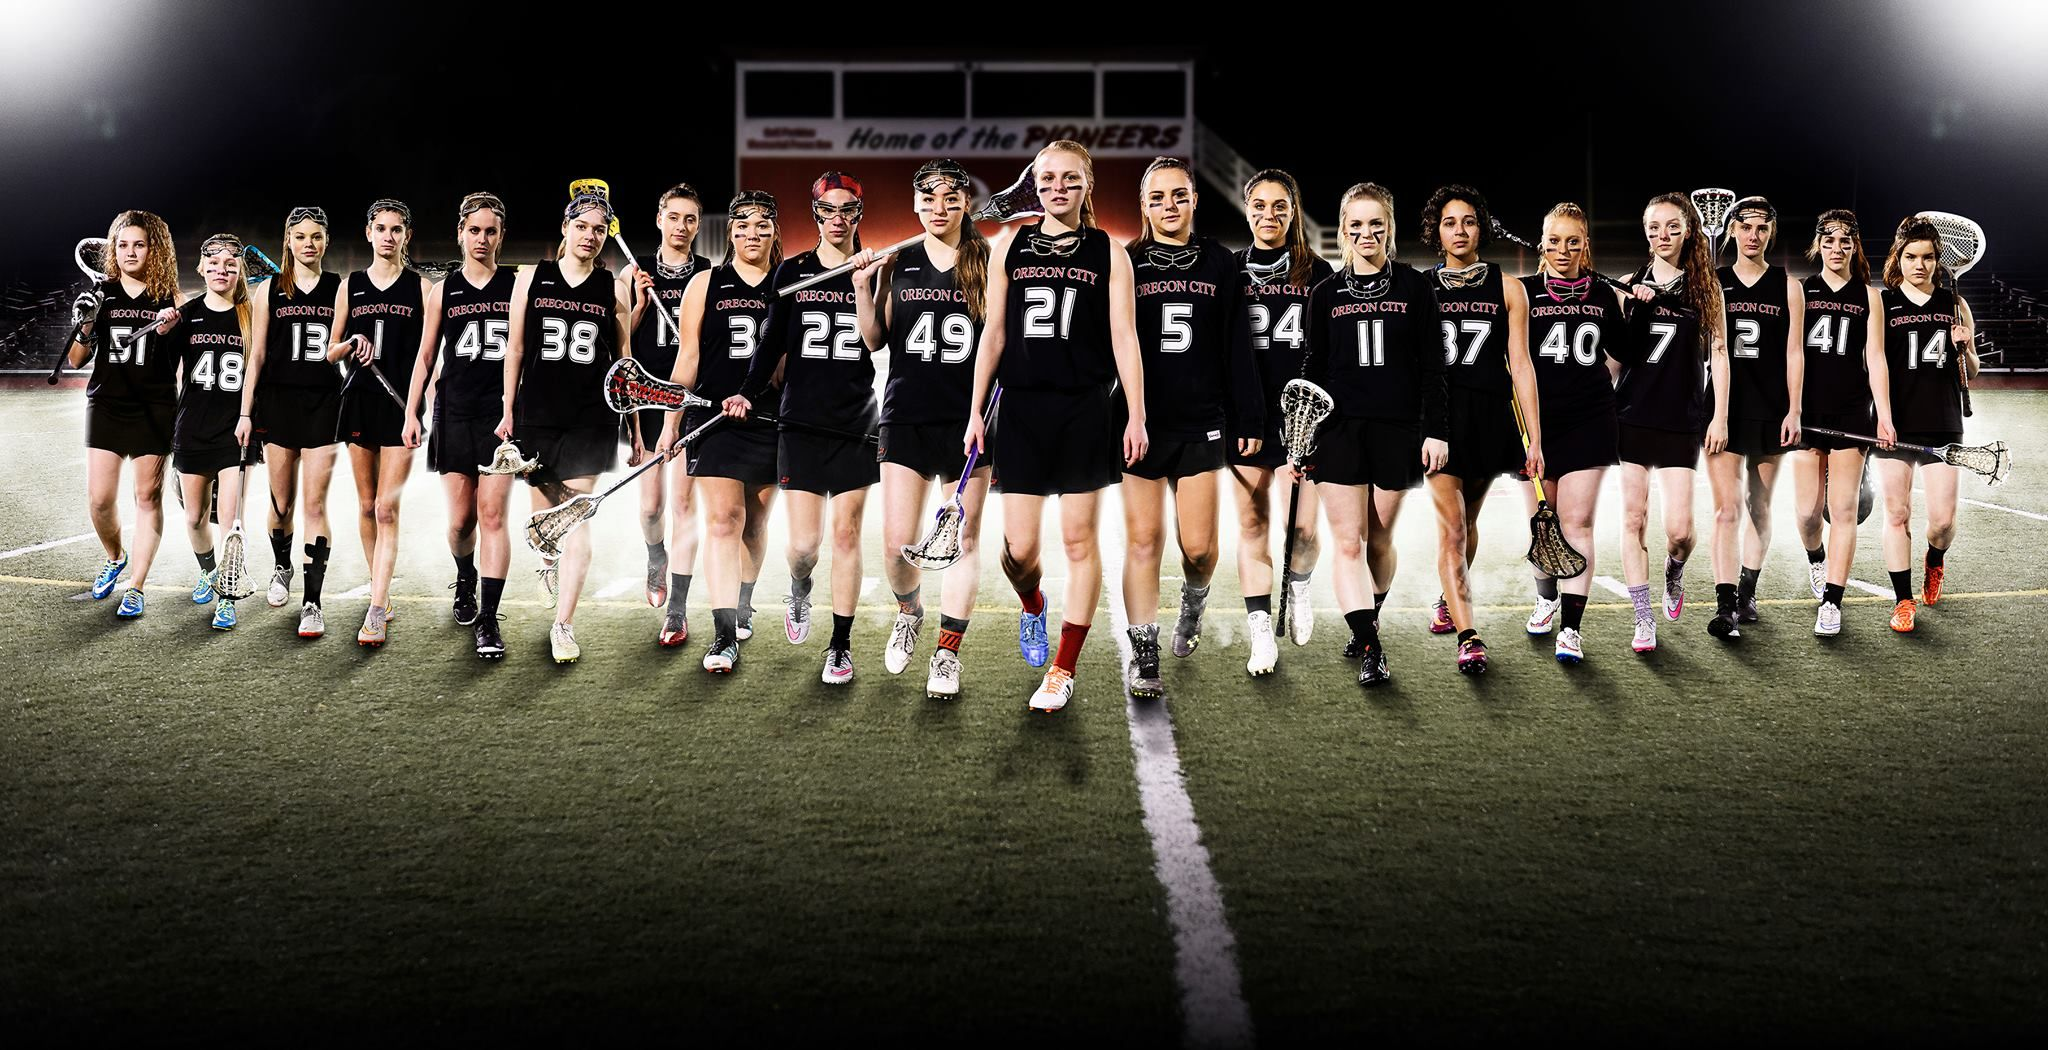 Girls Lacrosse 2015 16 High School Lacrosse Girls Lacrosse Oregon City High School